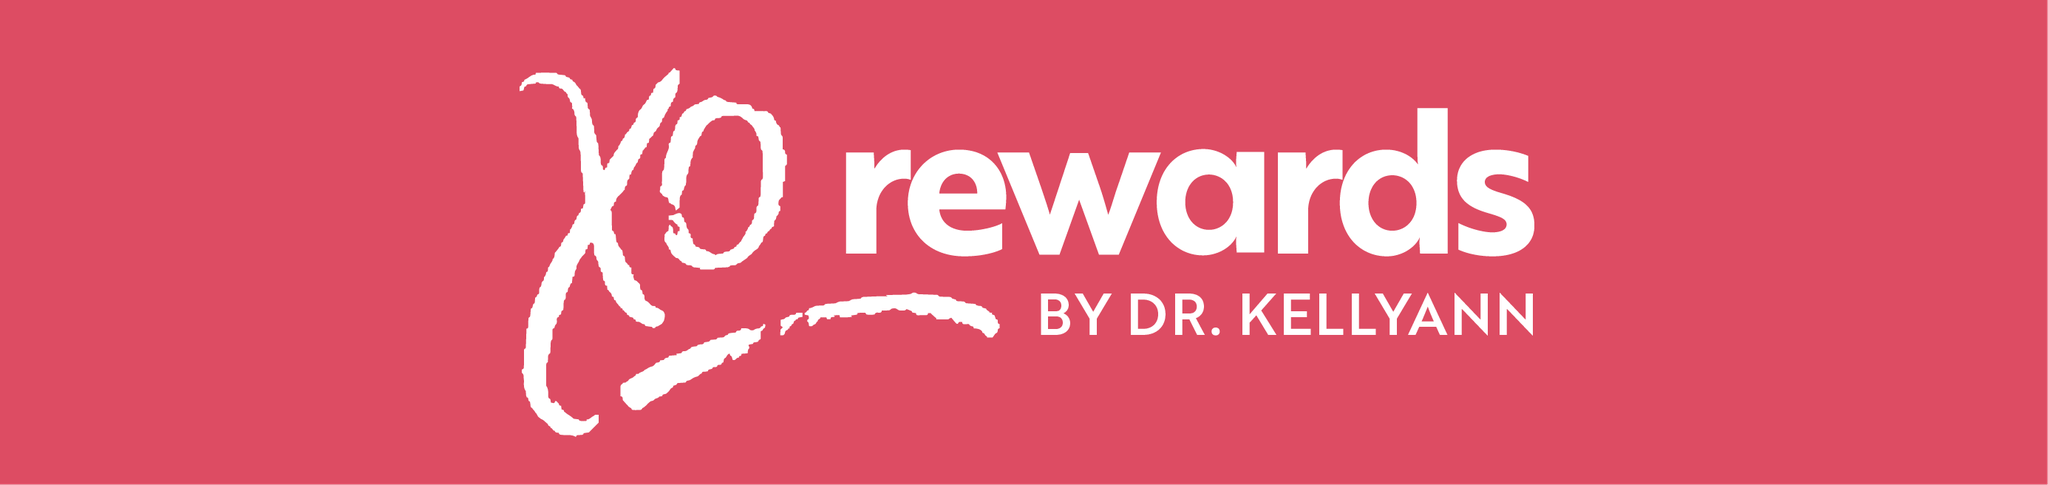 XO rewards by Dr. Kellyann